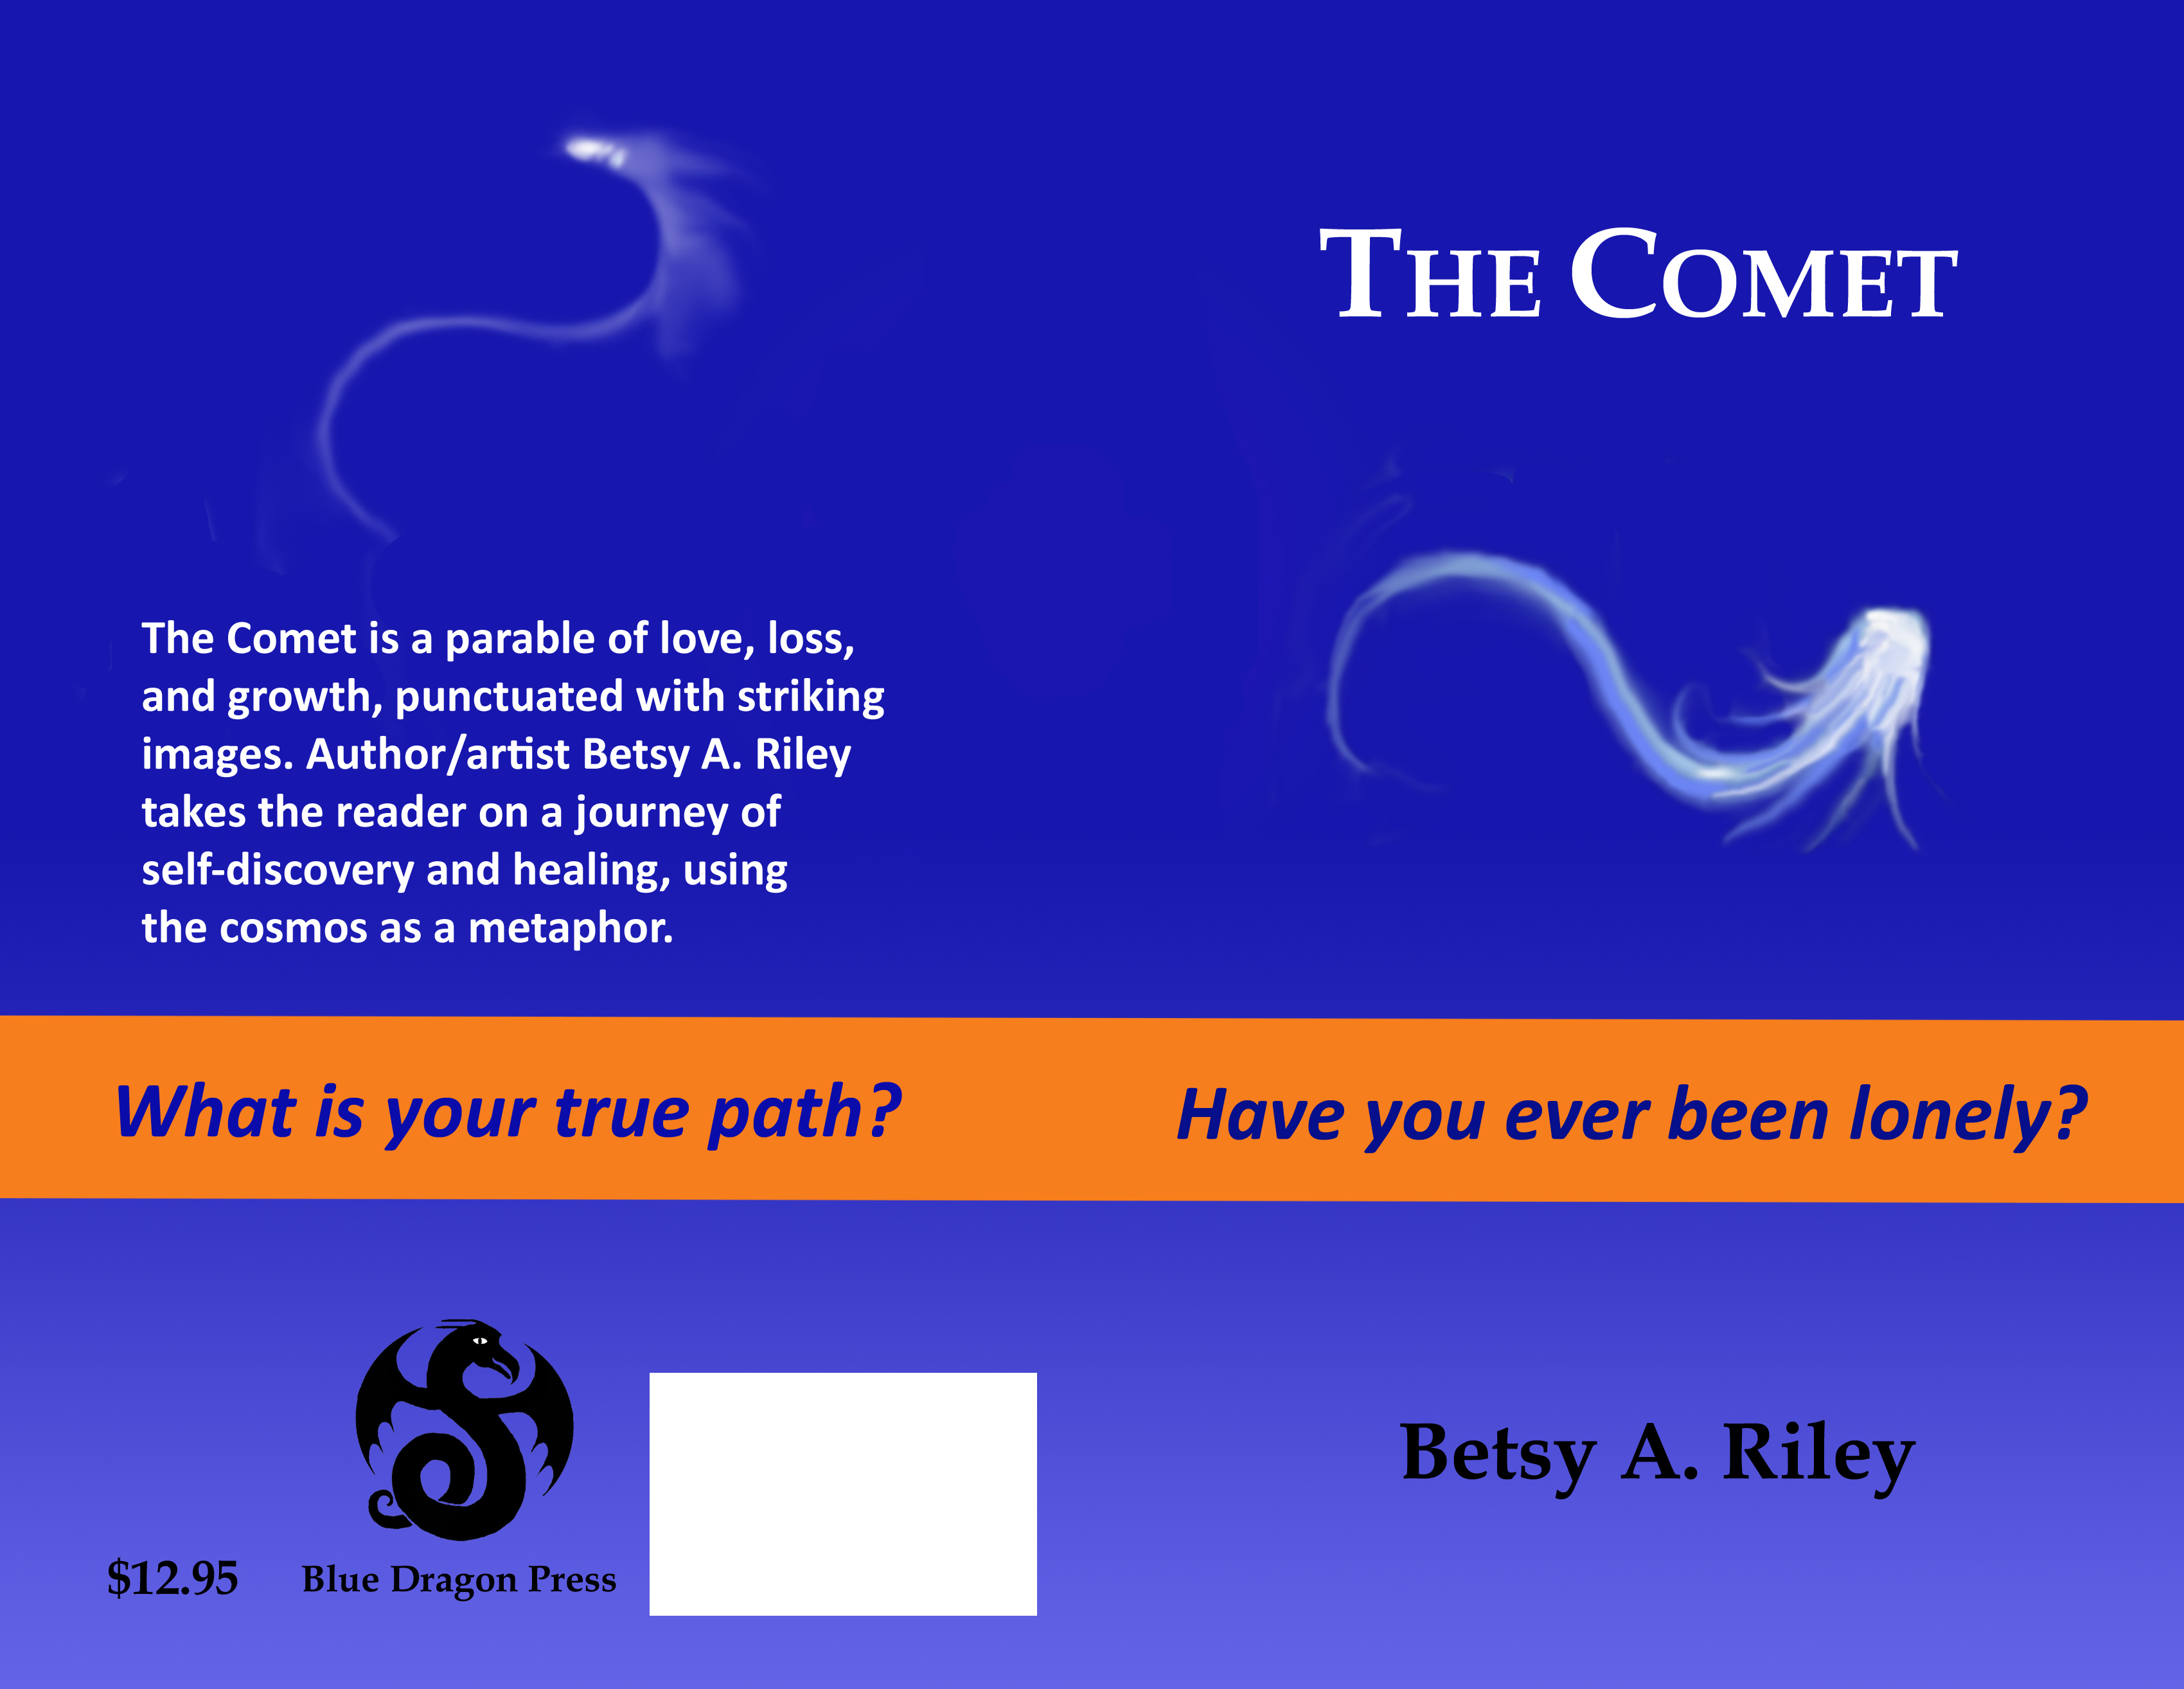 Cover design of The Comet